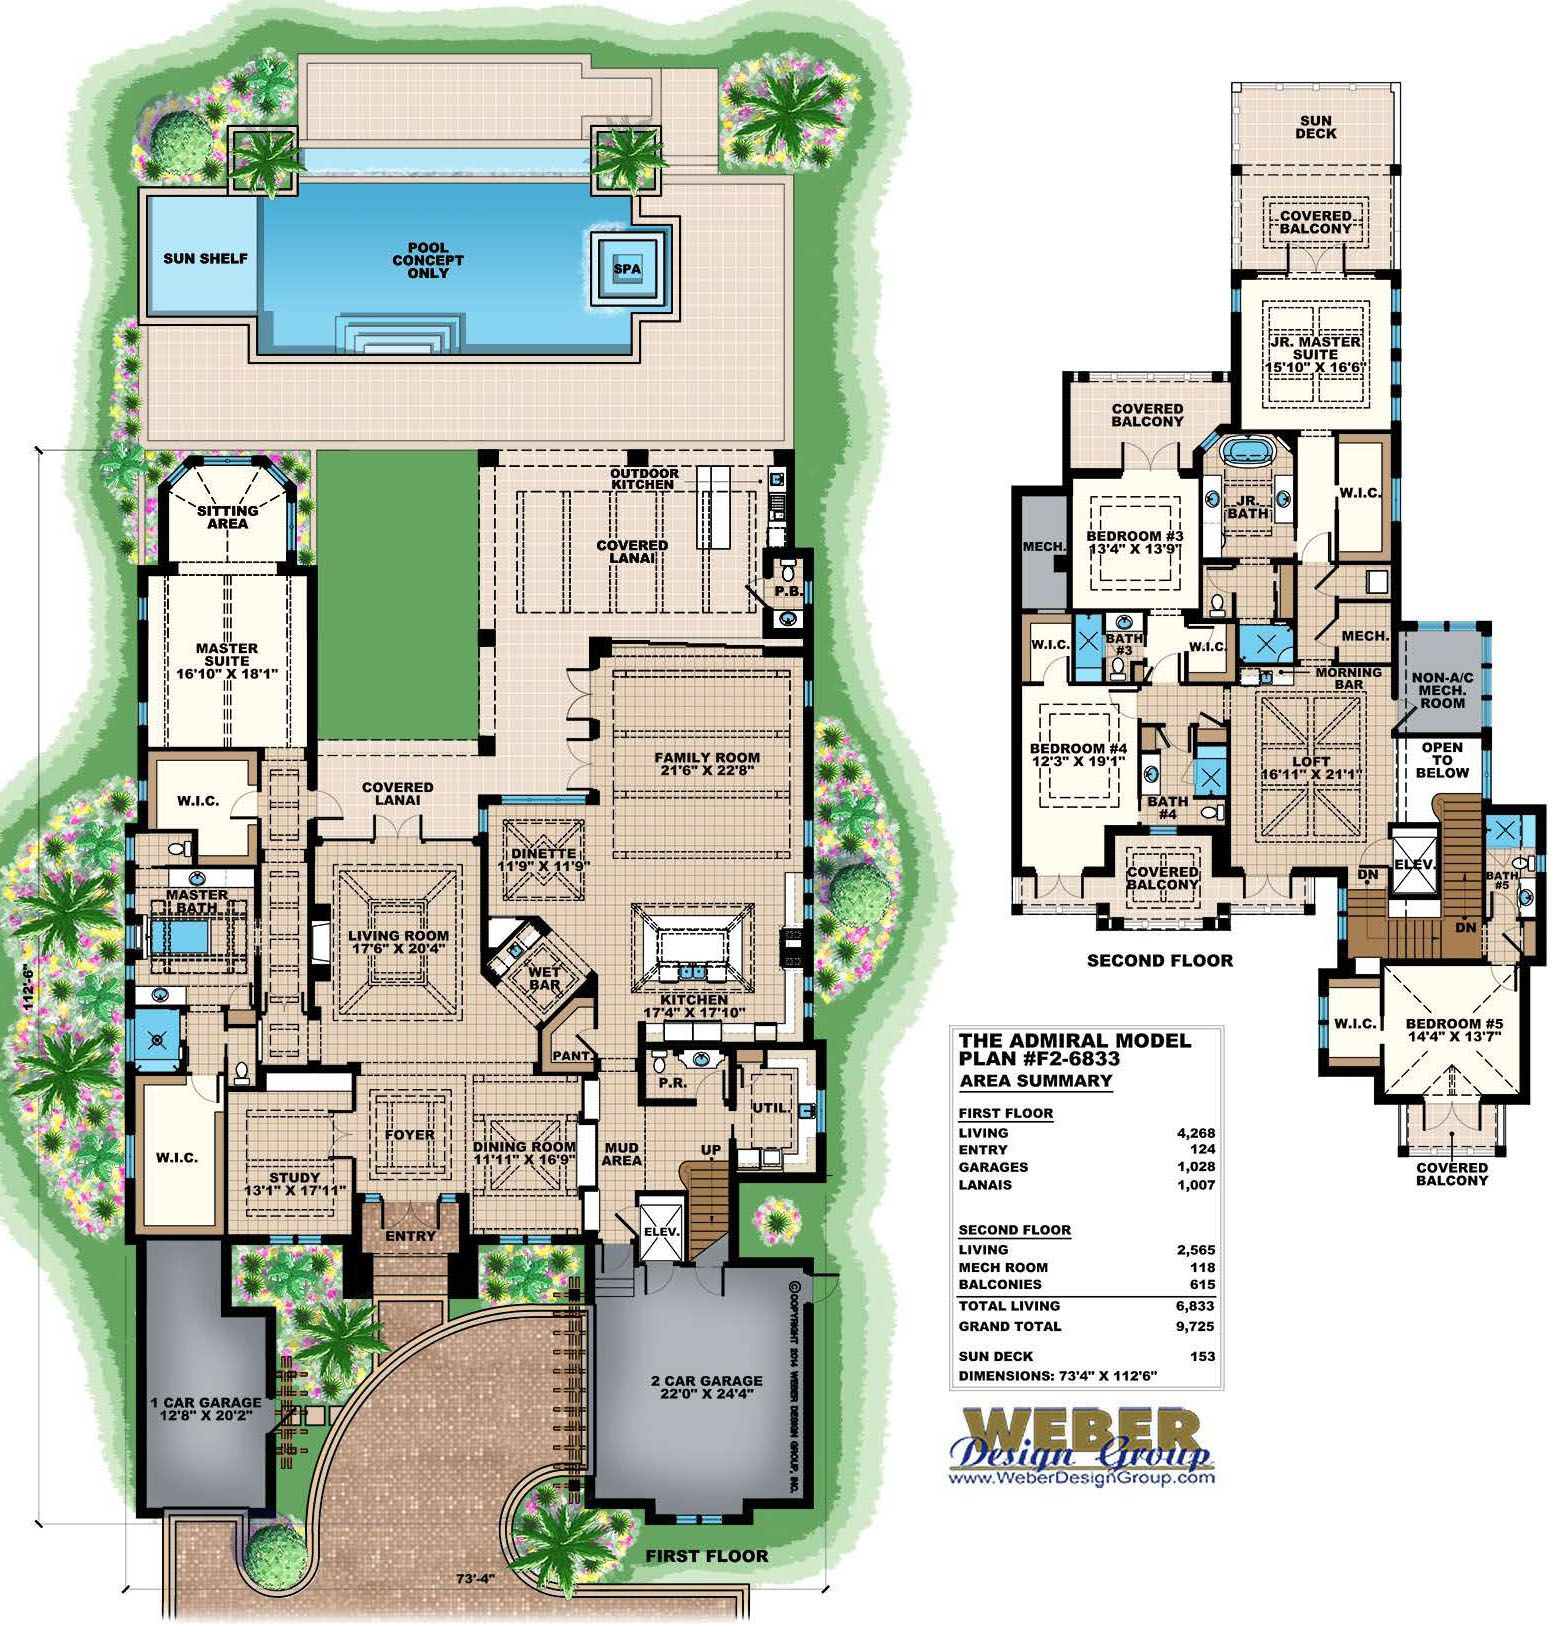 West In s House Plans Island Style West In s Coastal Home Plans